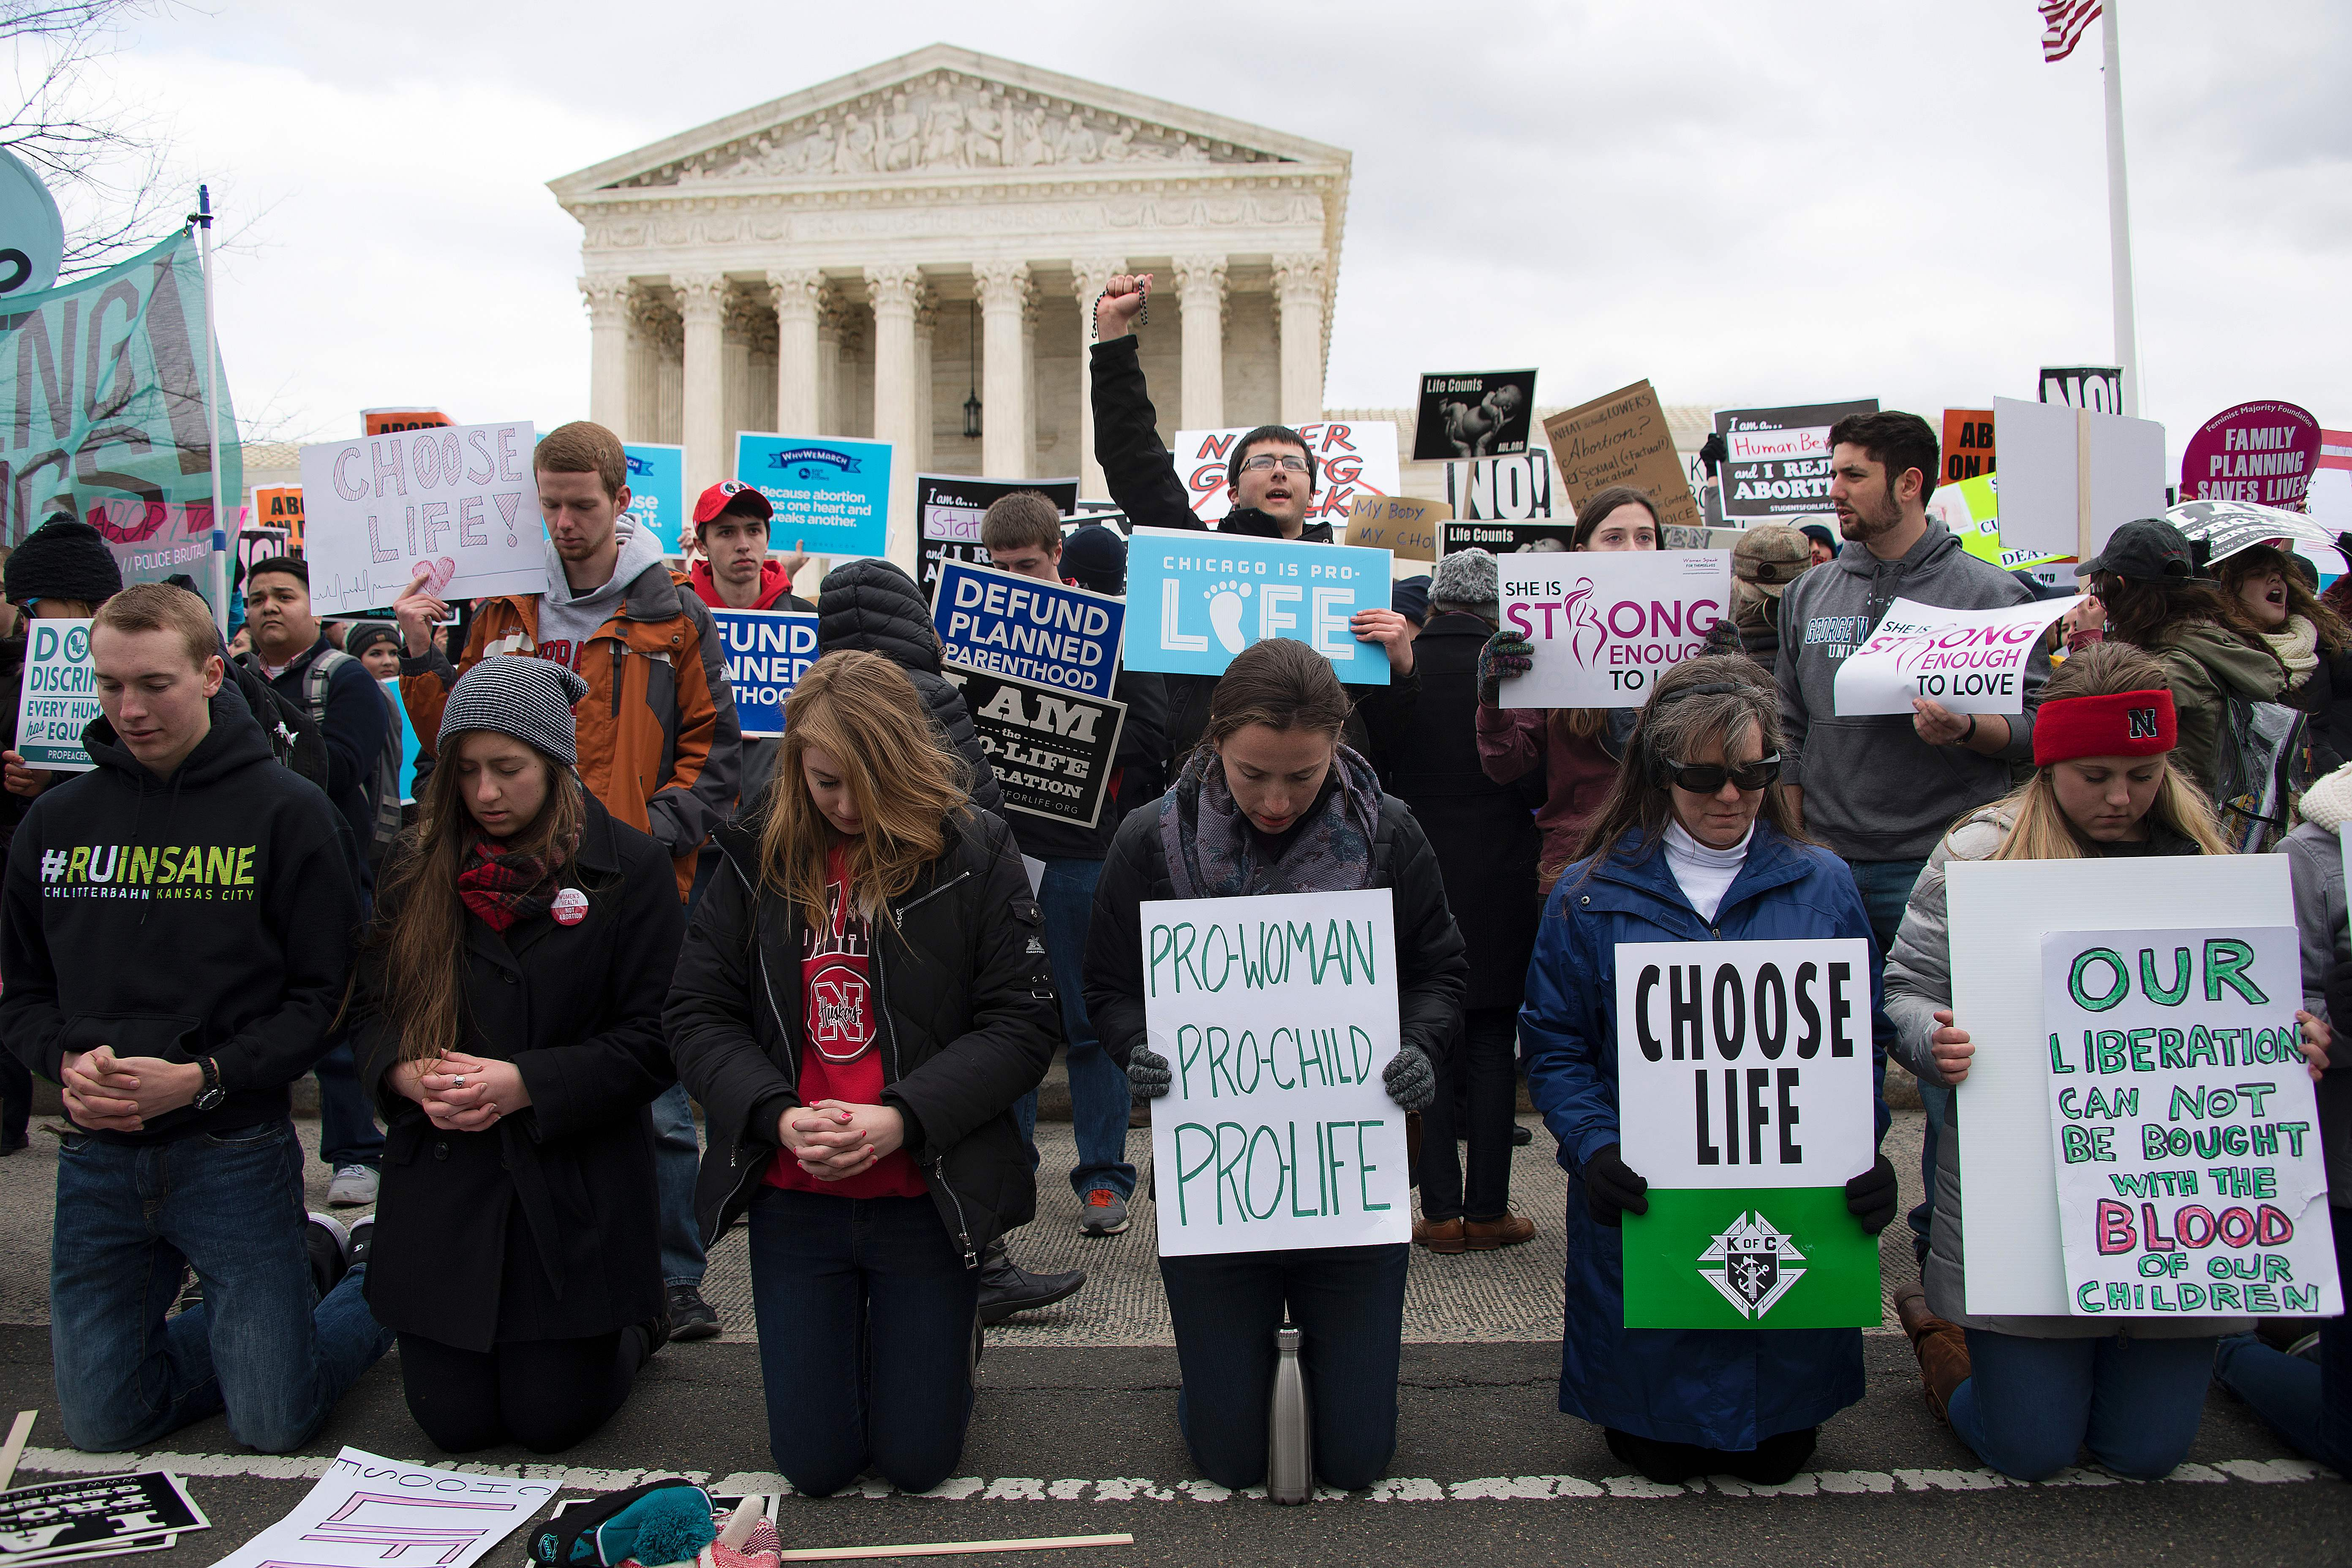 People criticize pro-lifers for focusing so much on abortion. But there's a reason we do.